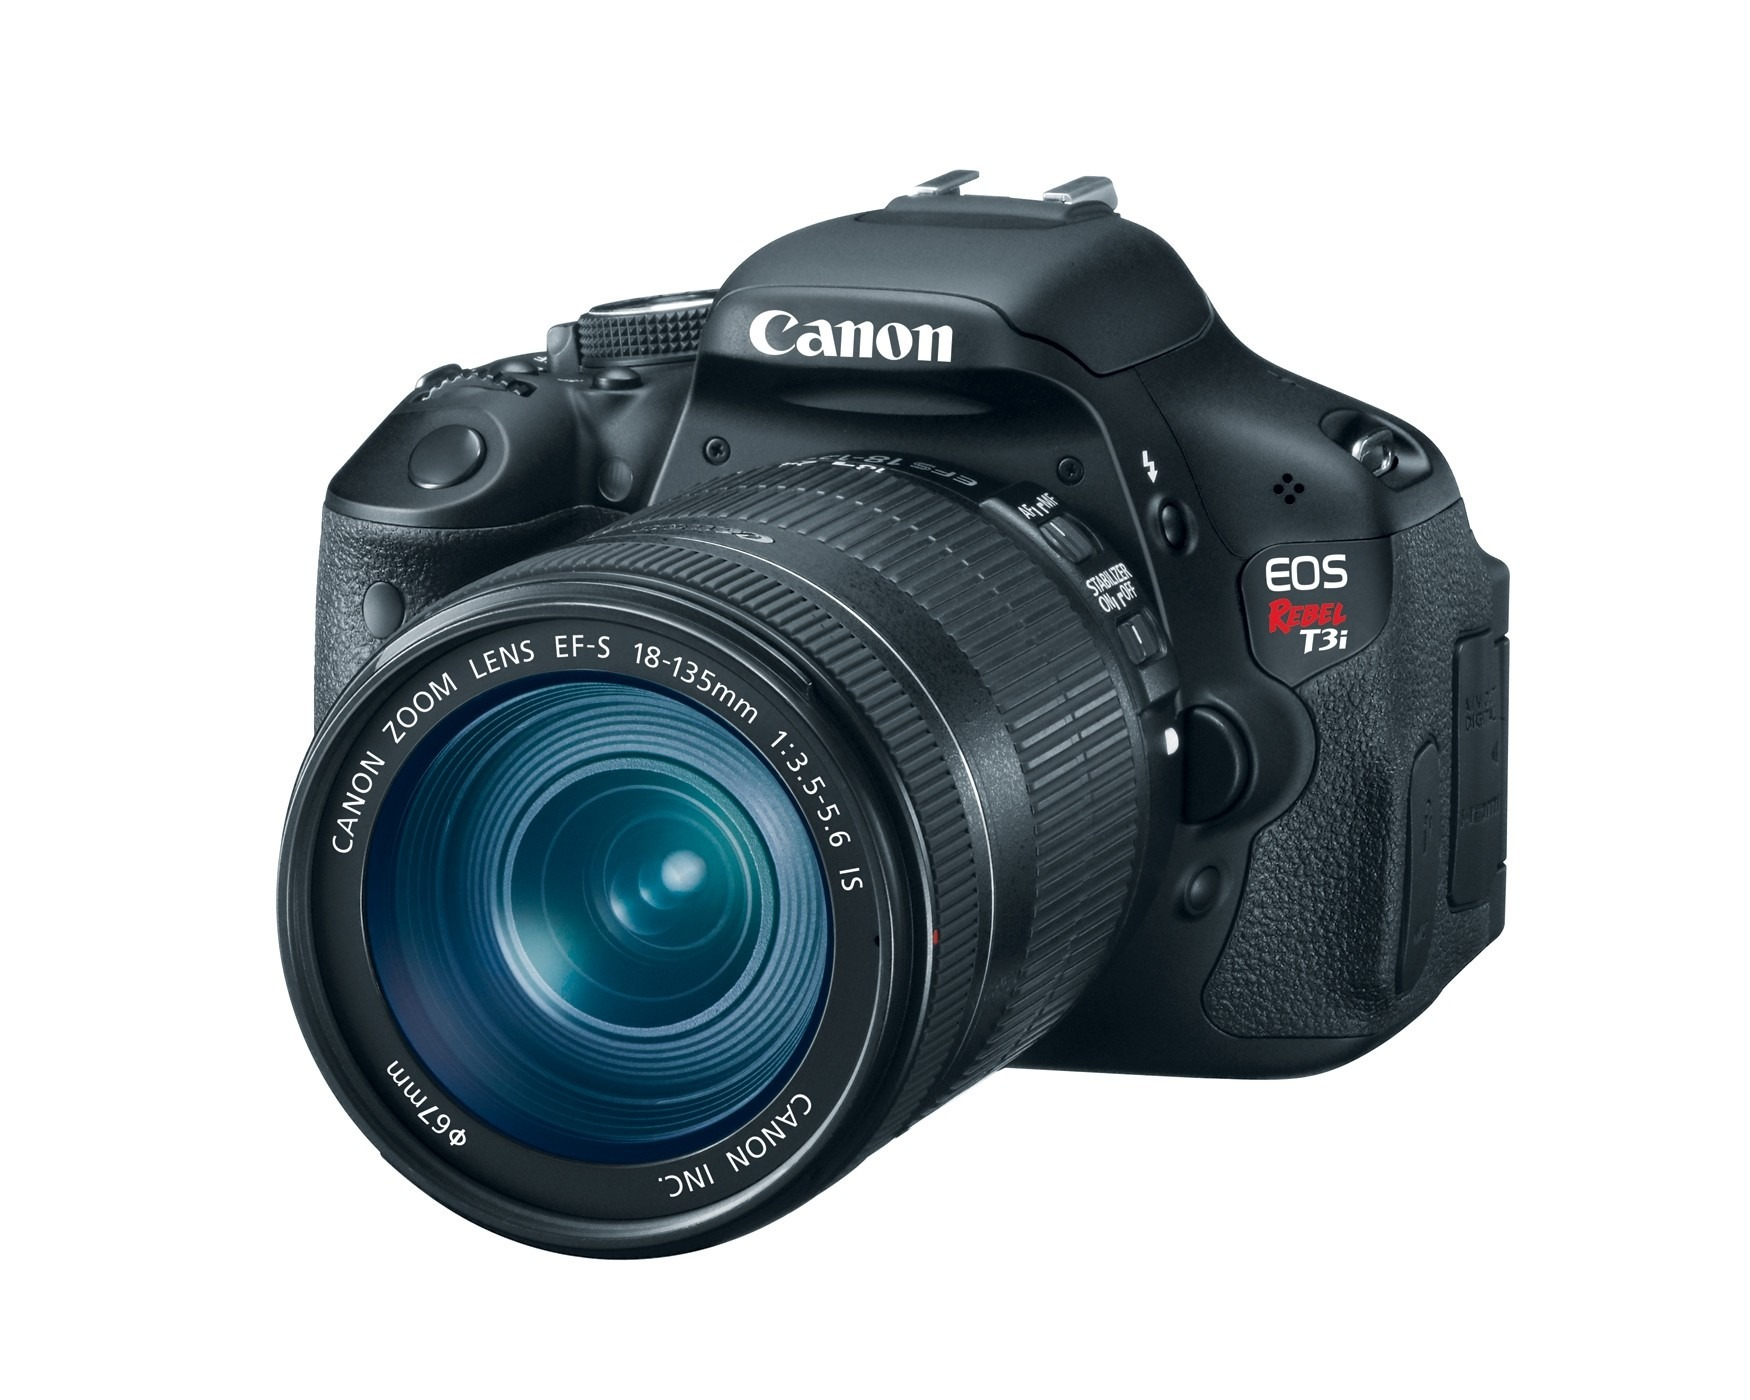 Canon EOS Rebel T3i (EF-S 18-55mm f/3.5-5.6 IS Lens ...